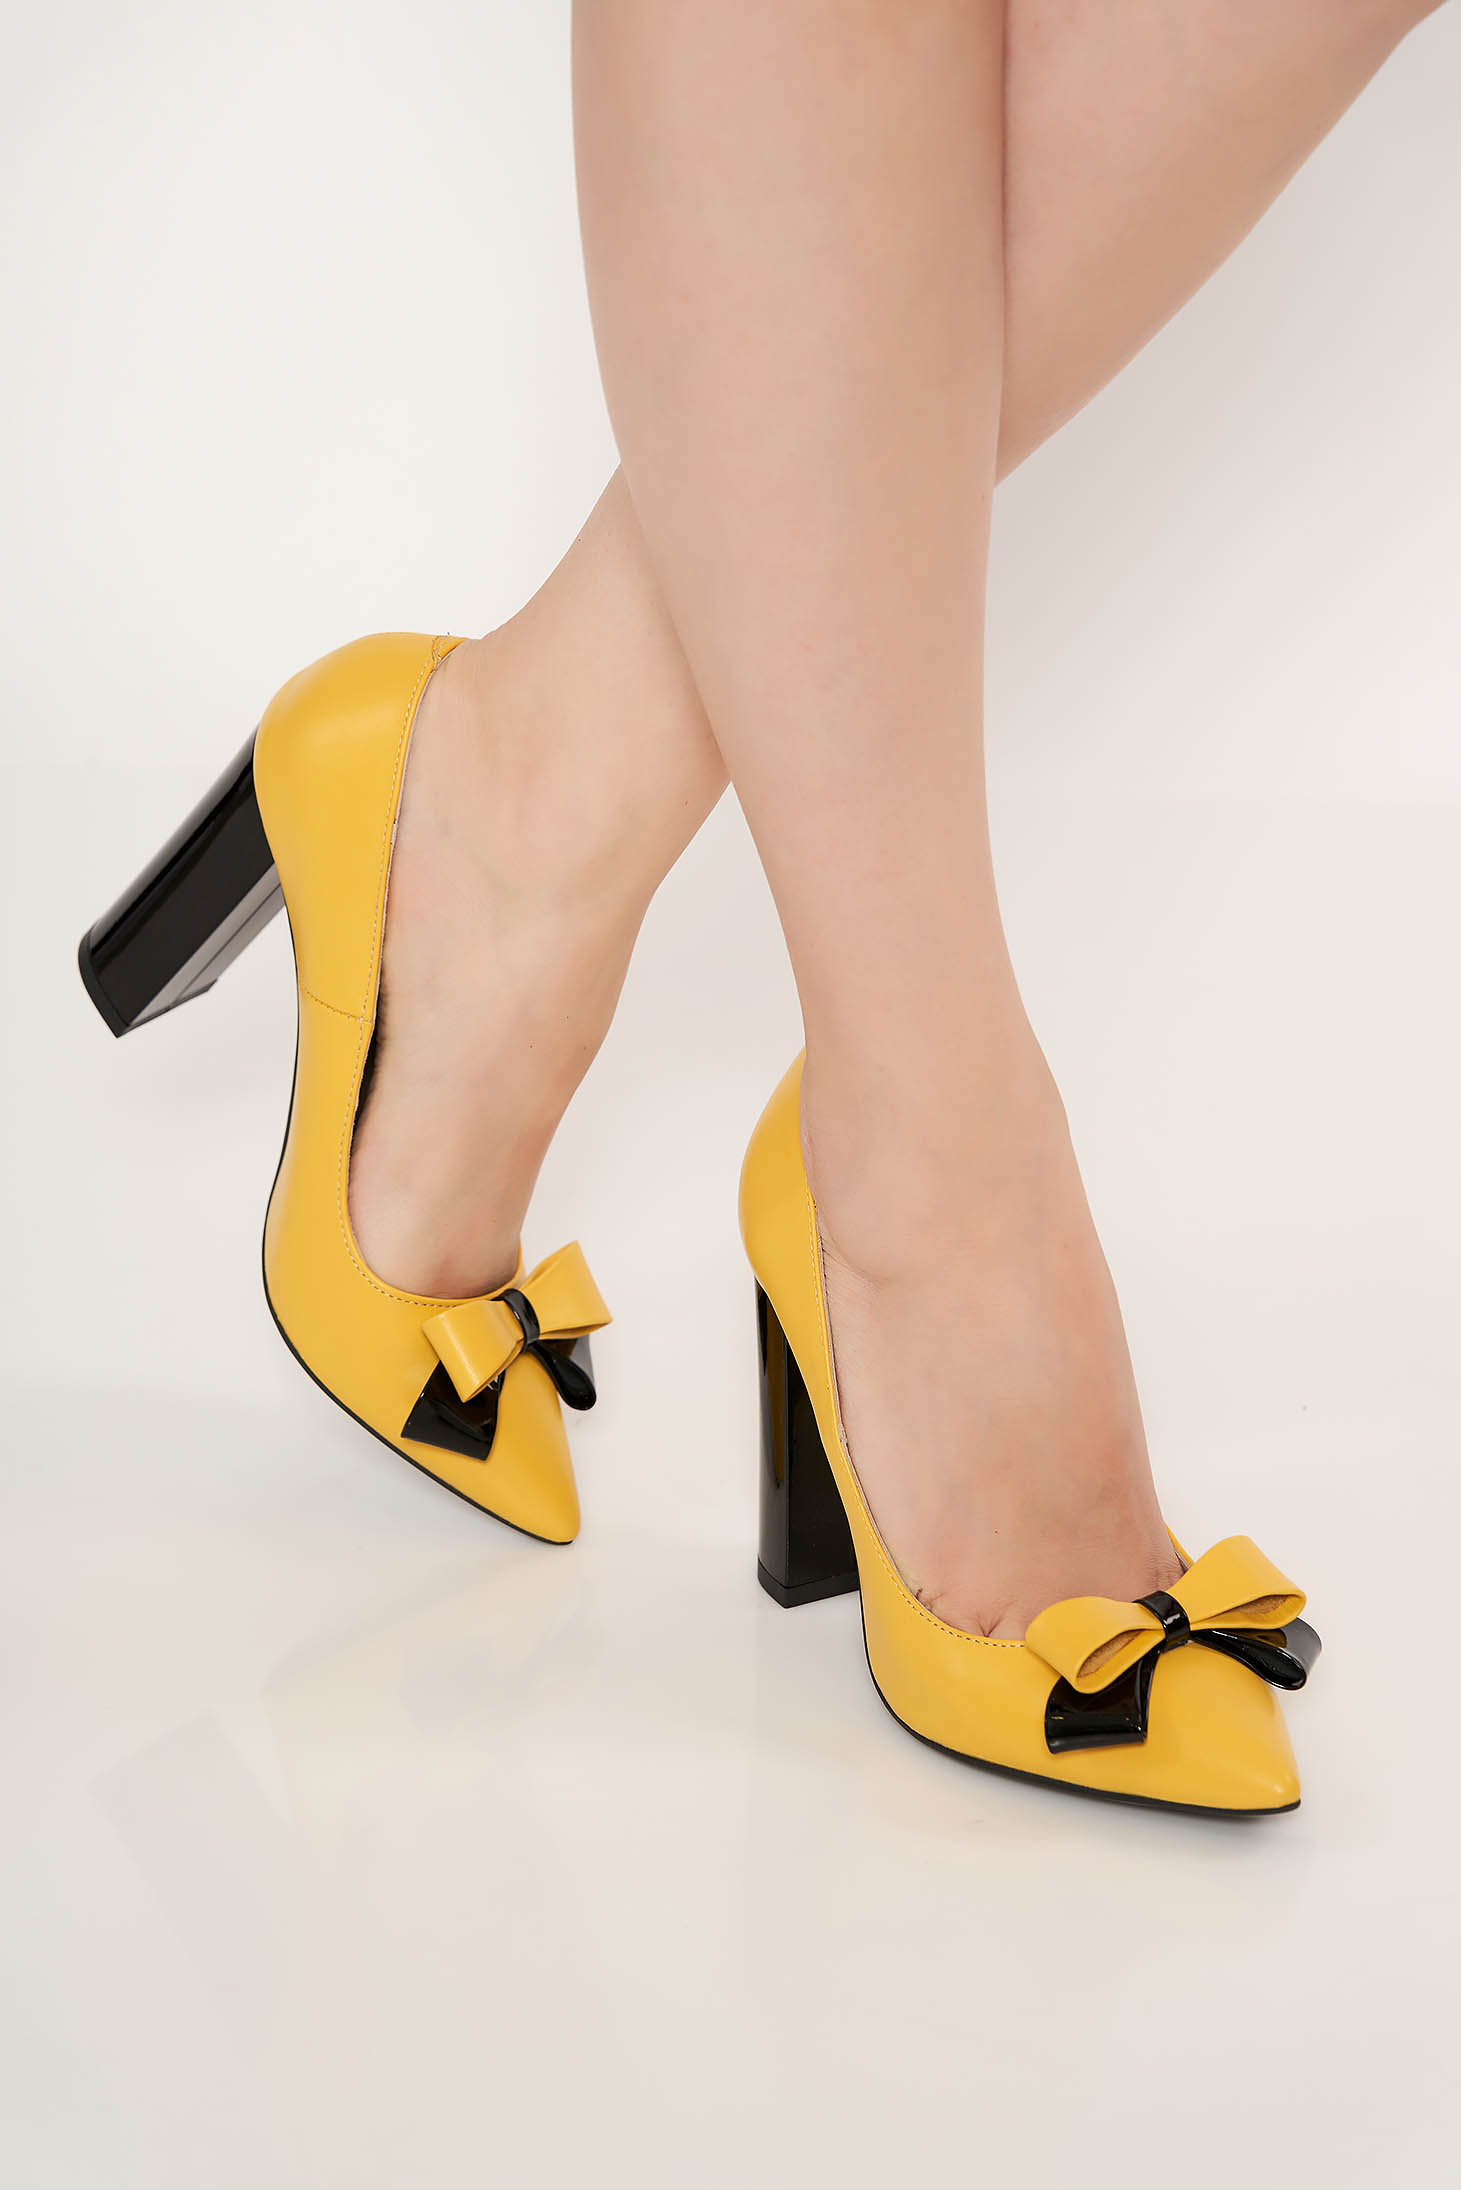 f787d8e8469 Yellow office shoes natural leather chunky heel slightly pointed toe tip  bow accessory